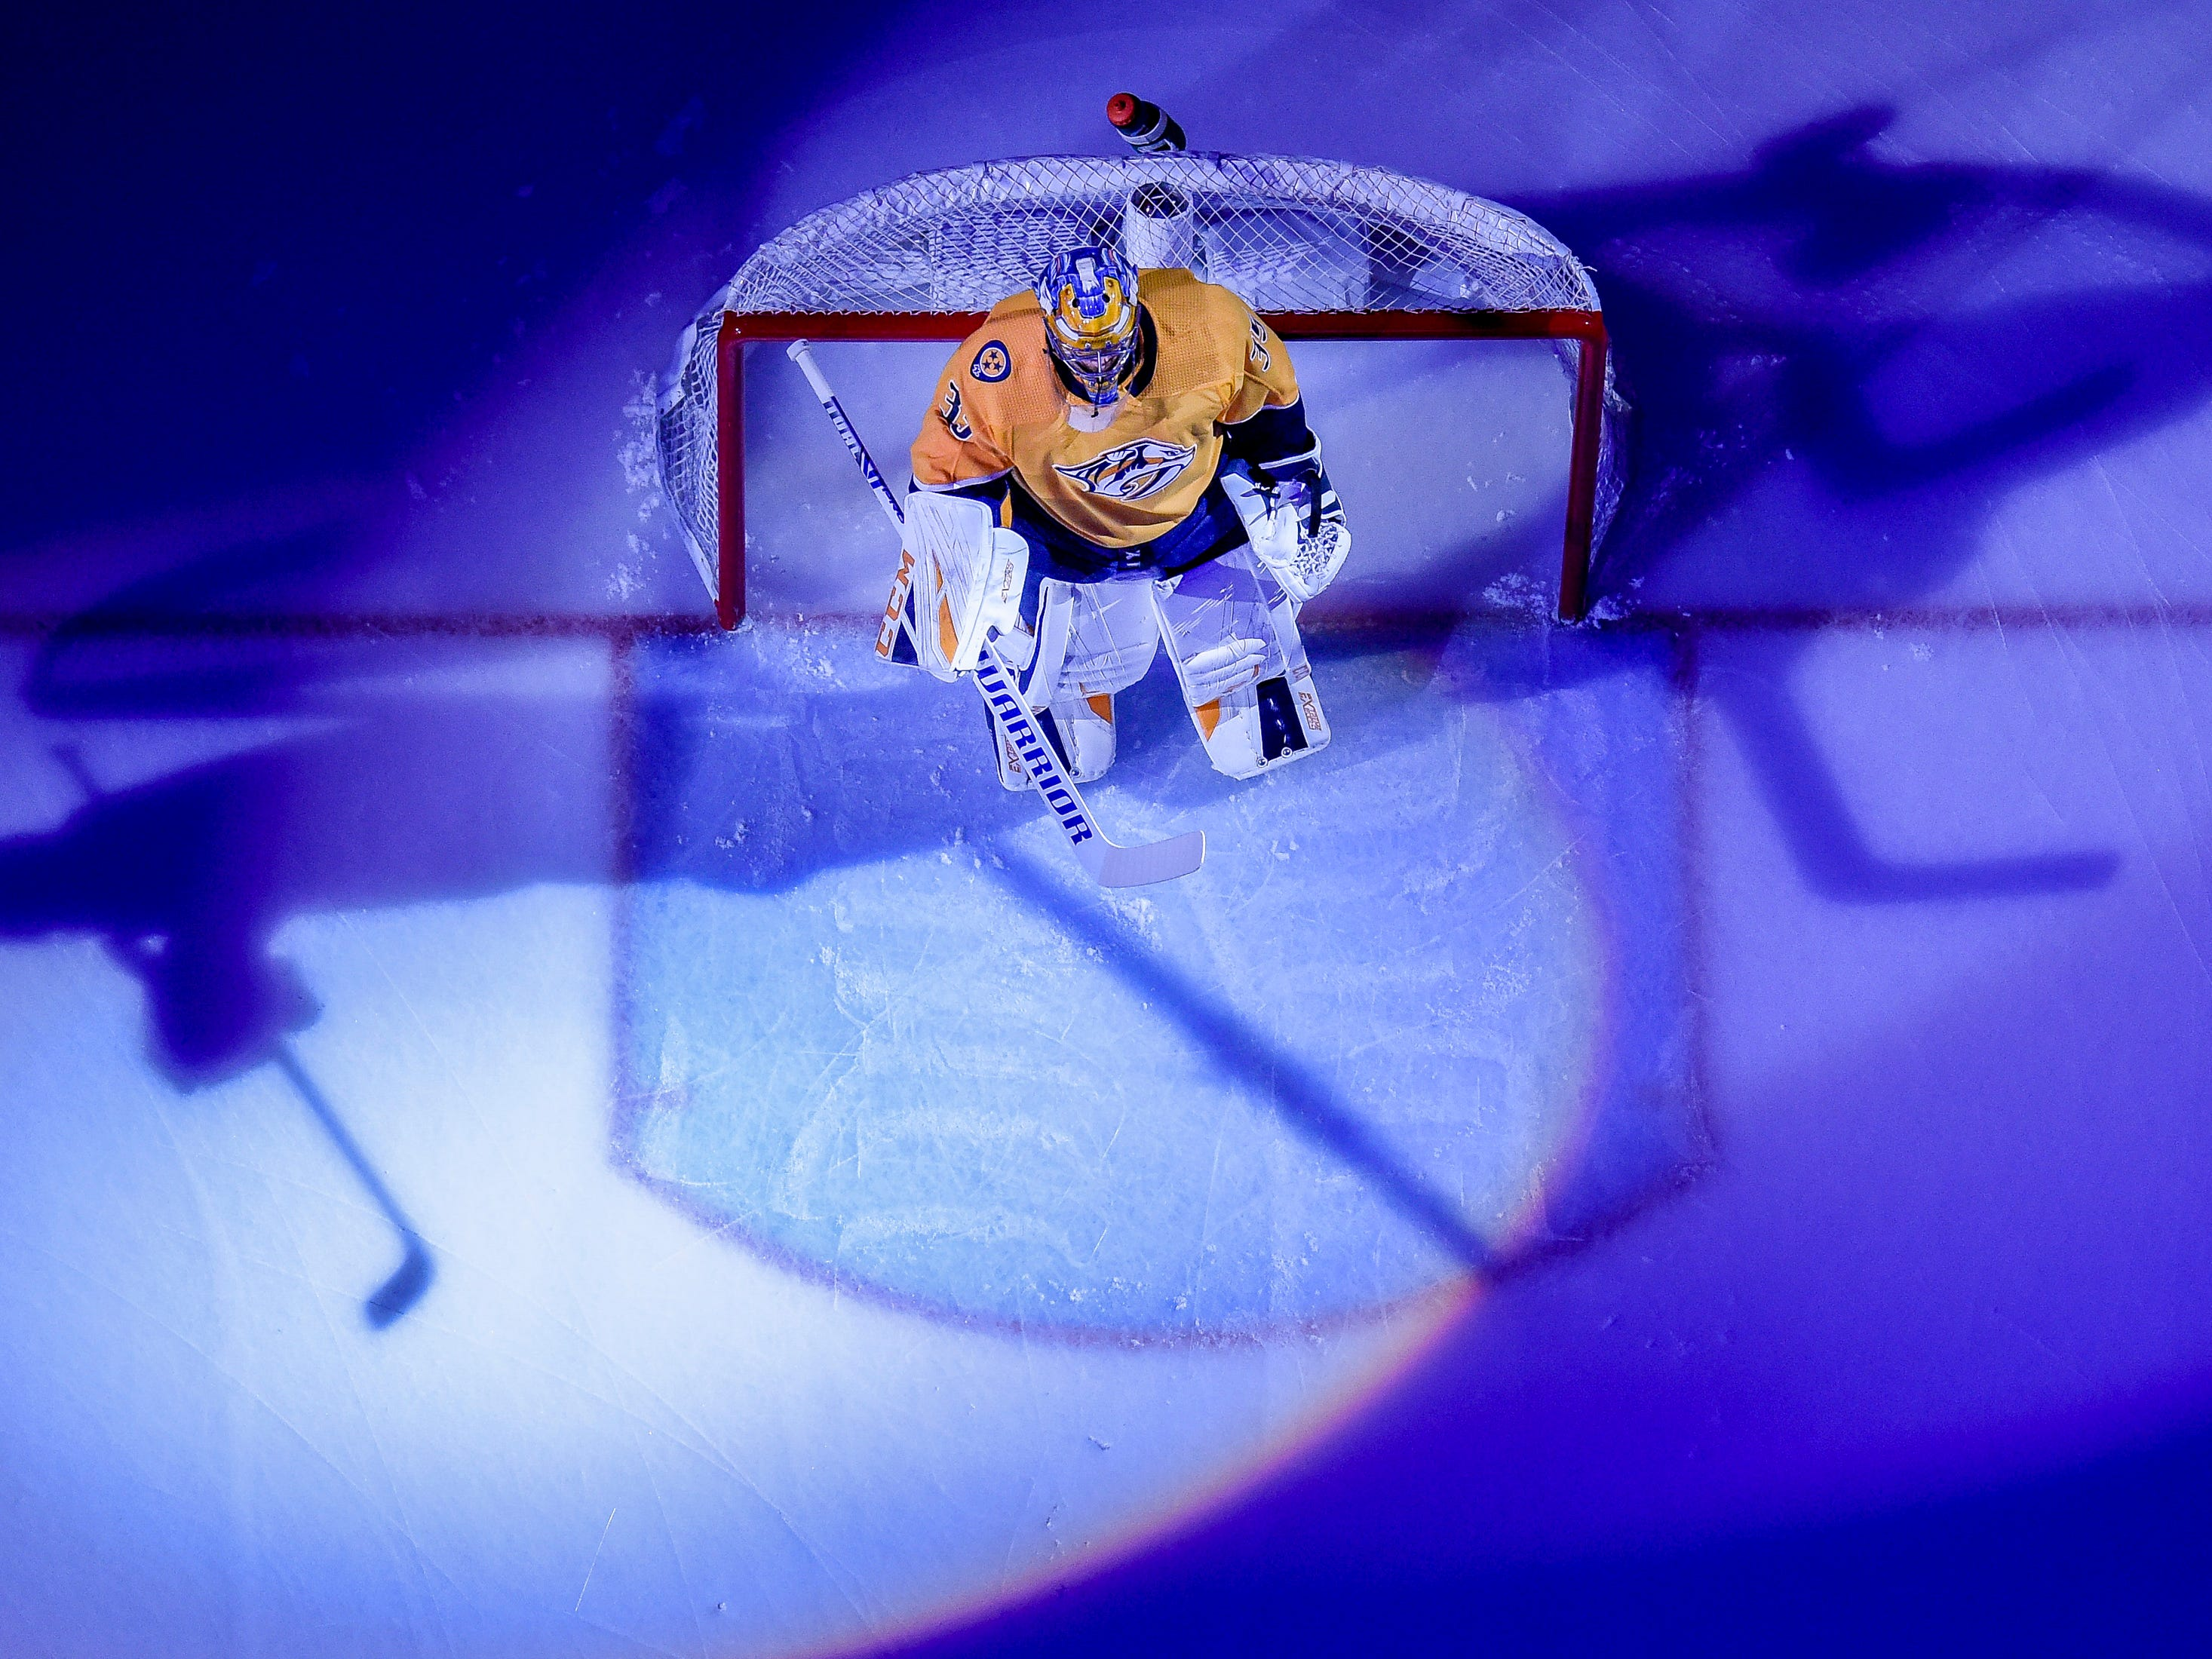 Nashville Predators goaltender Pekka Rinne (35) is introduced before facing the Arizona Coyotes at Bridgestone Arena in Nashville, Tenn., Thursday, Nov. 29, 2018.